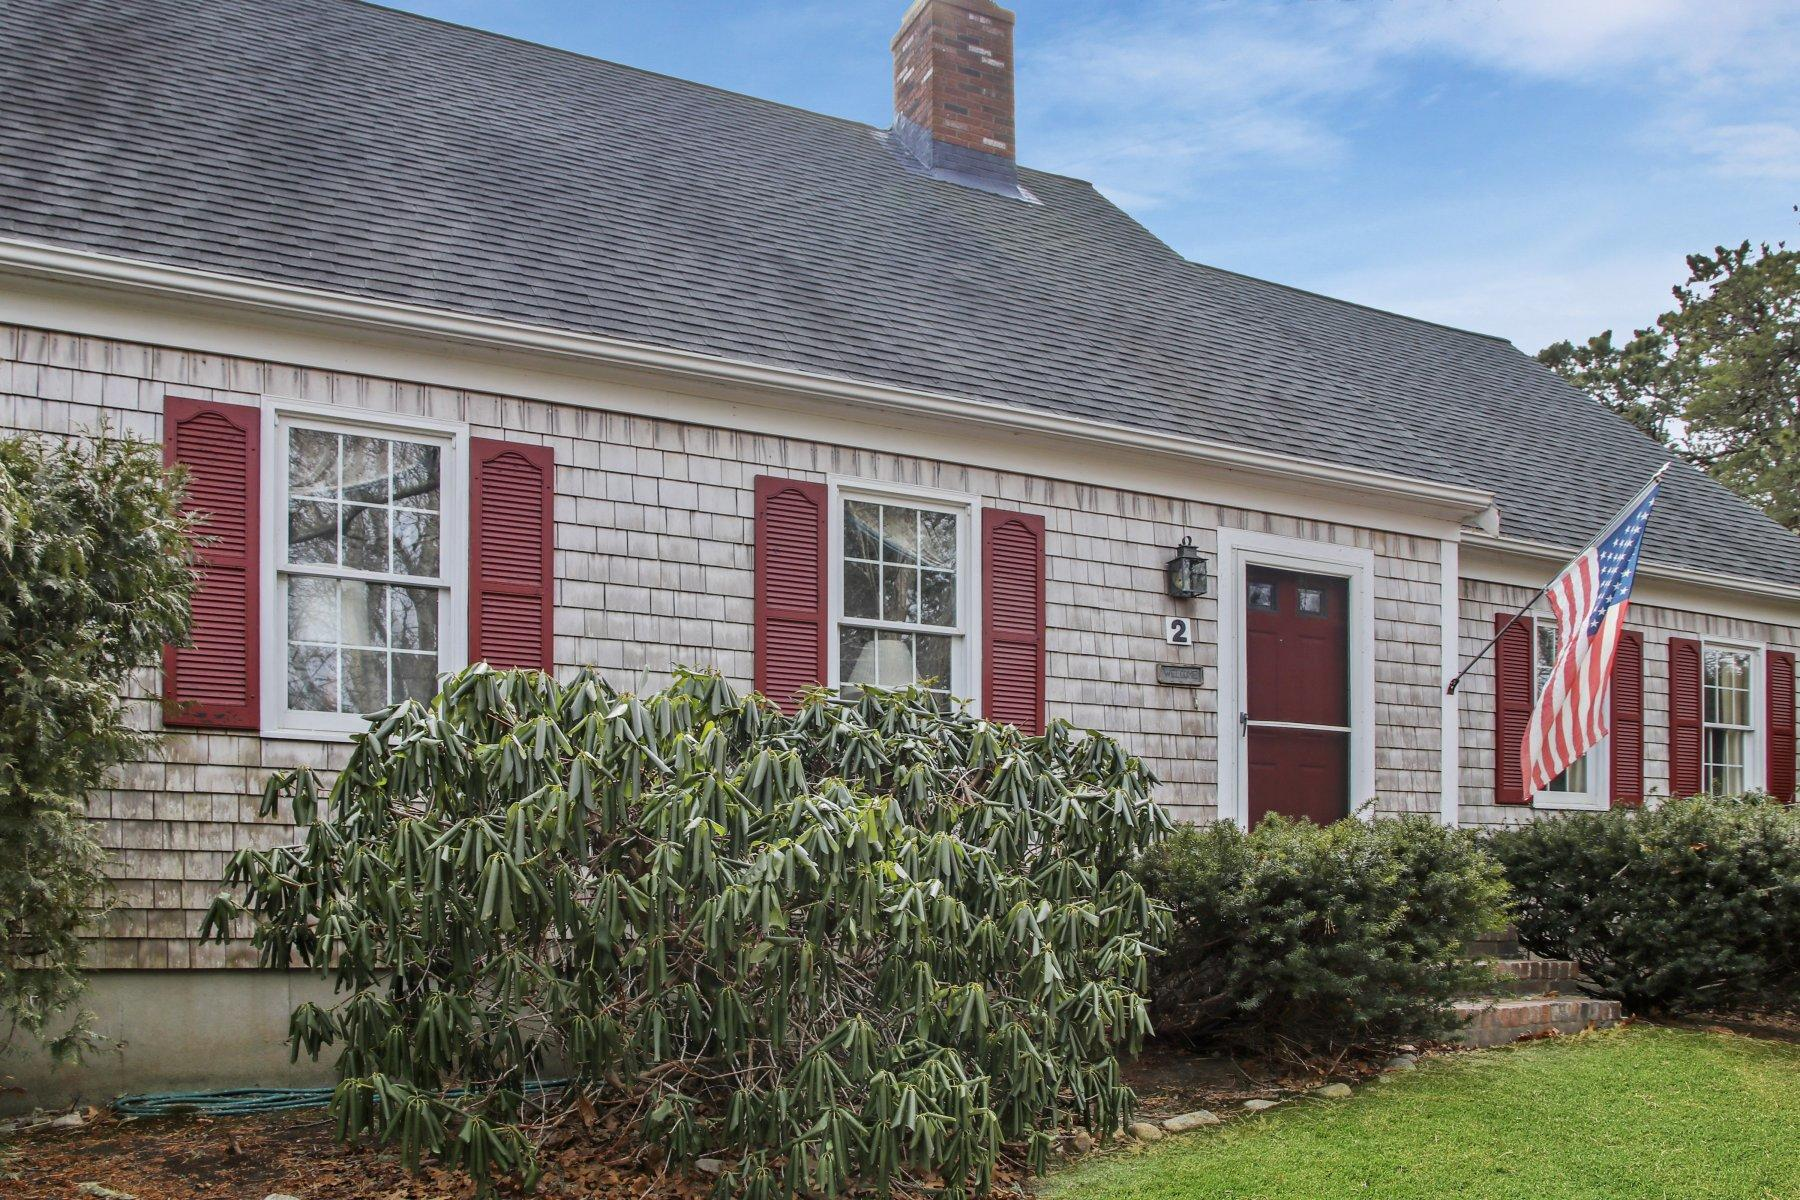 Single Family Home for Active at 2 Mariner Drive, Harwich, MA 2 Mariner Drive Harwich, Massachusetts 02645 United States